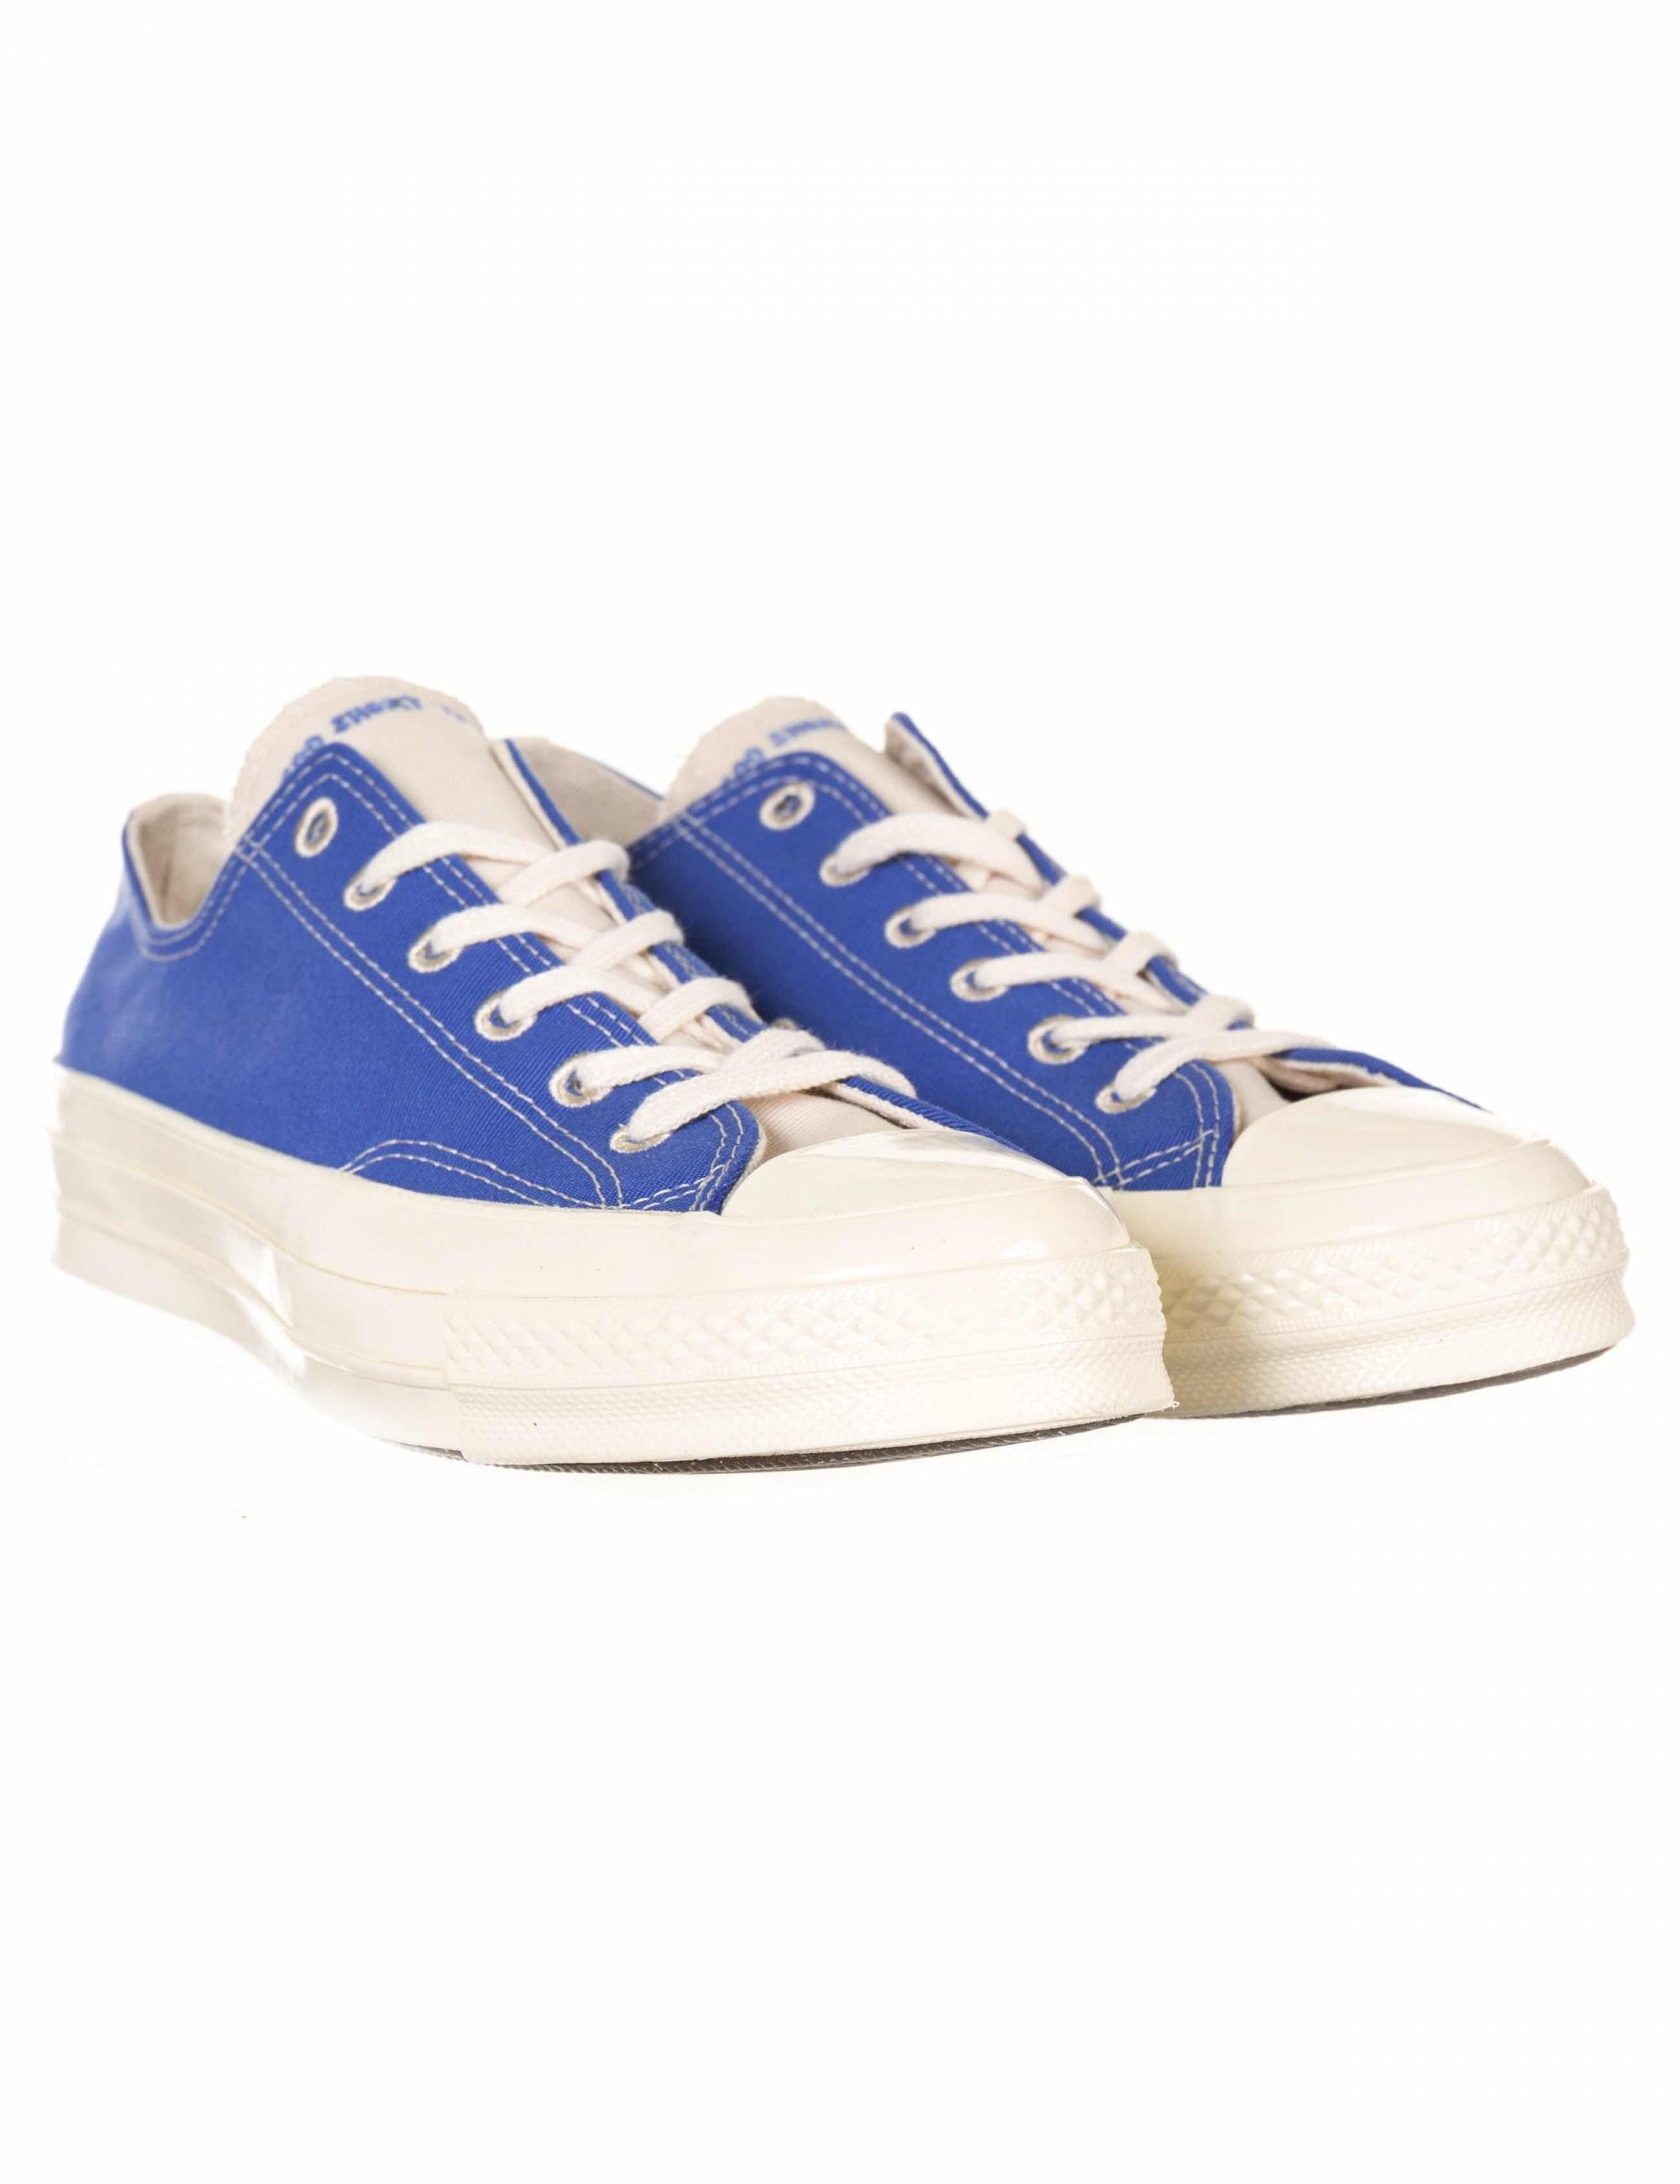 confirmar carro Independientemente  Converse 1970s Chuck Taylor All Star Renew Ox Trainers - Ozone Blue -  Footwear from Fat Buddha Store UK